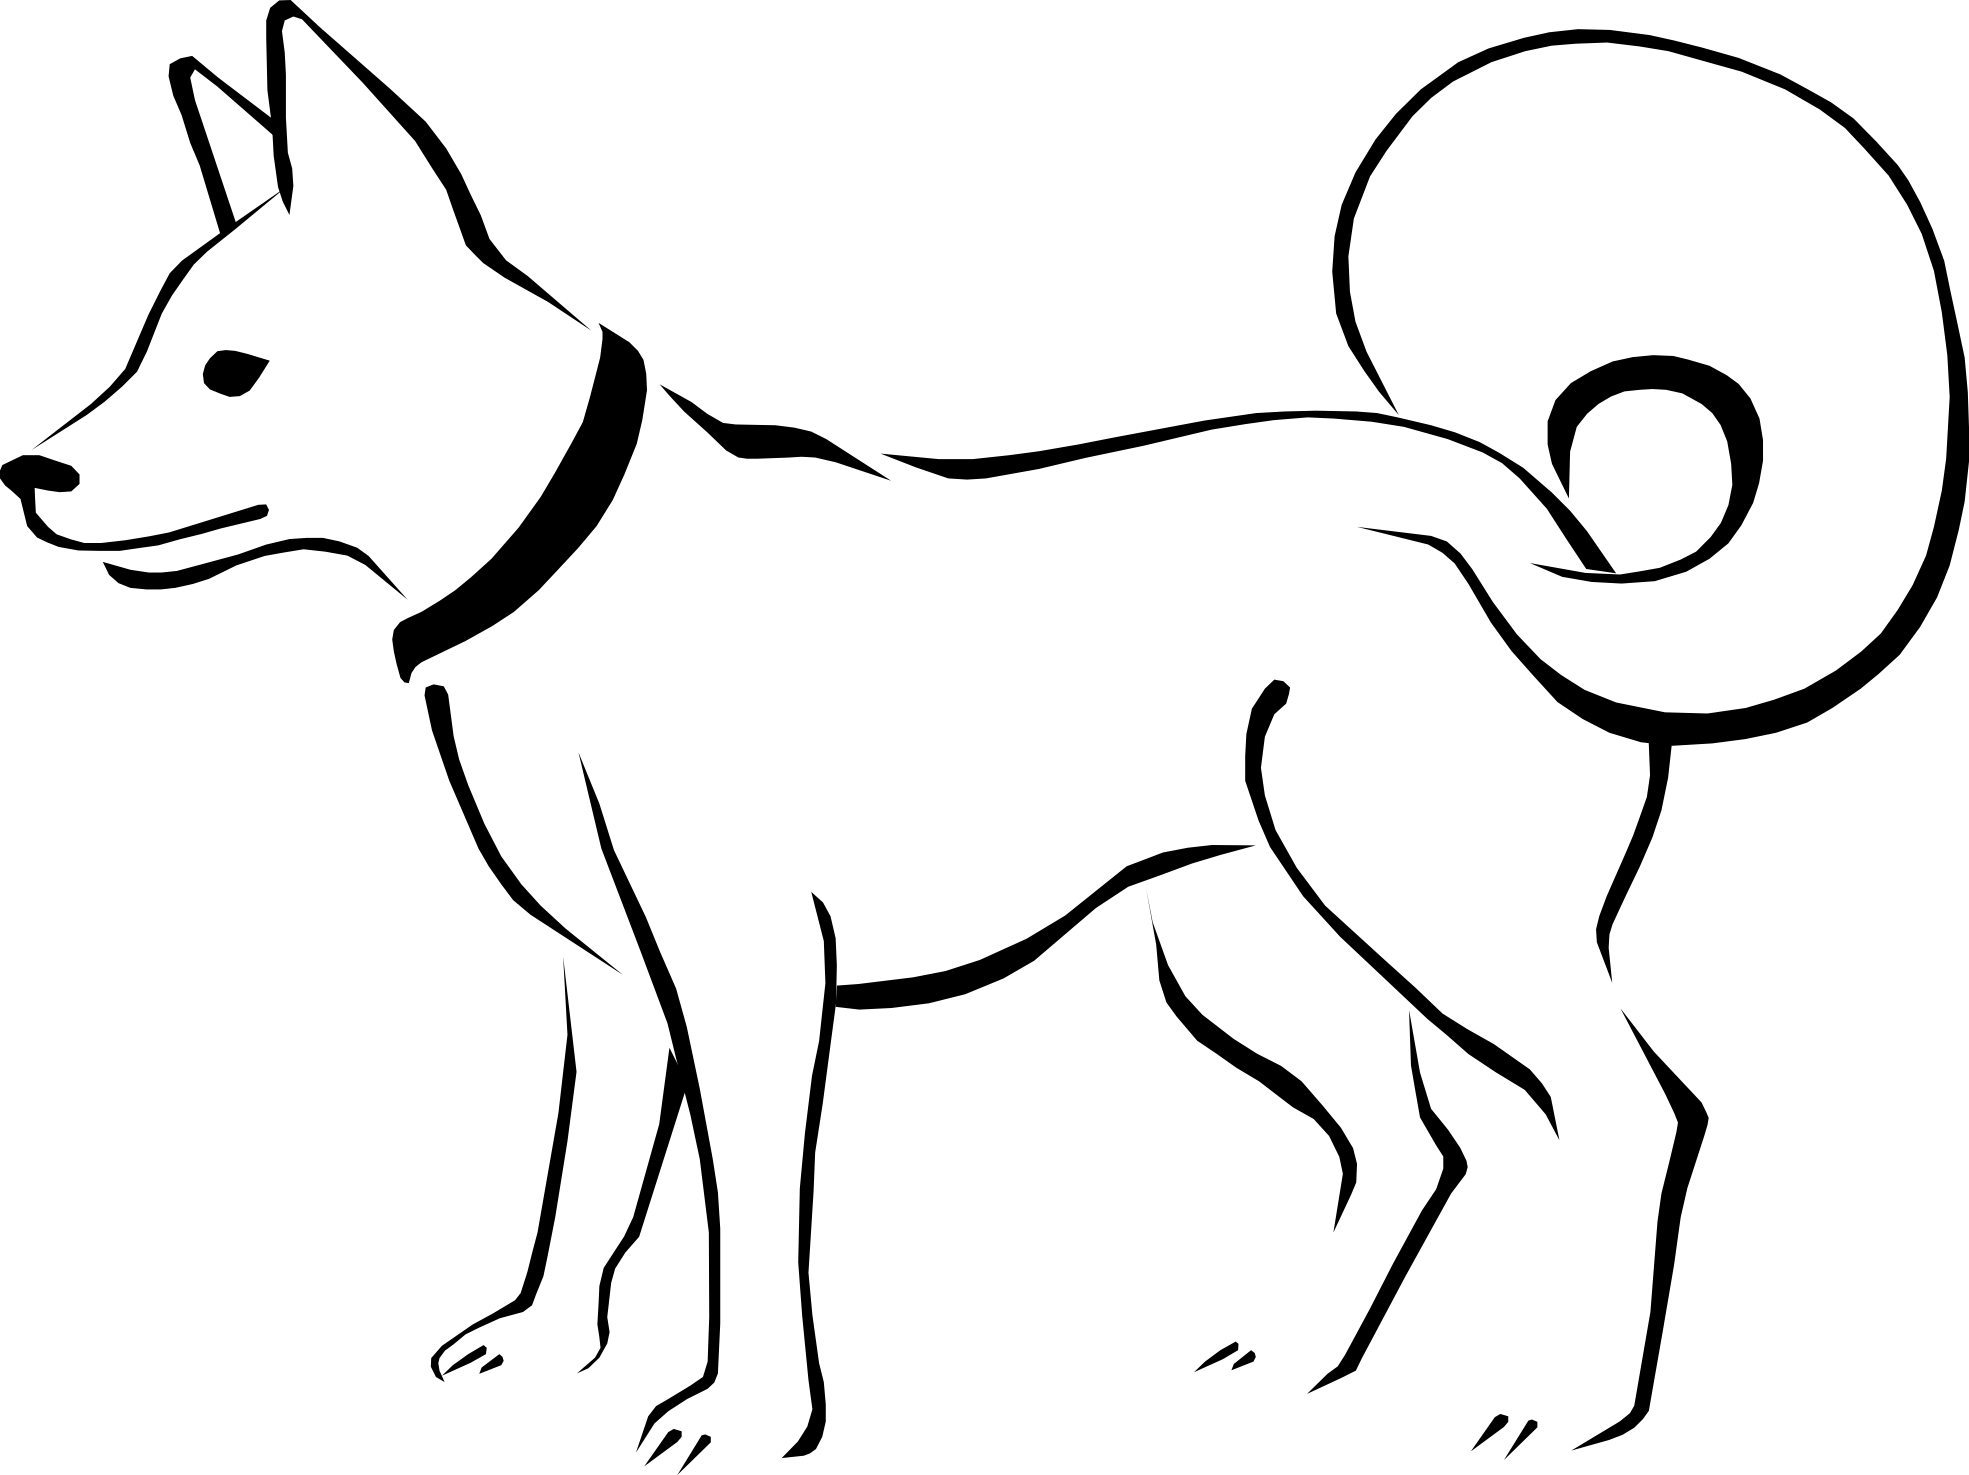 Brush dog clipart royalty free stock black-and-white-dog-clip-art-black-and-whiteblack-and-white-dog ... royalty free stock